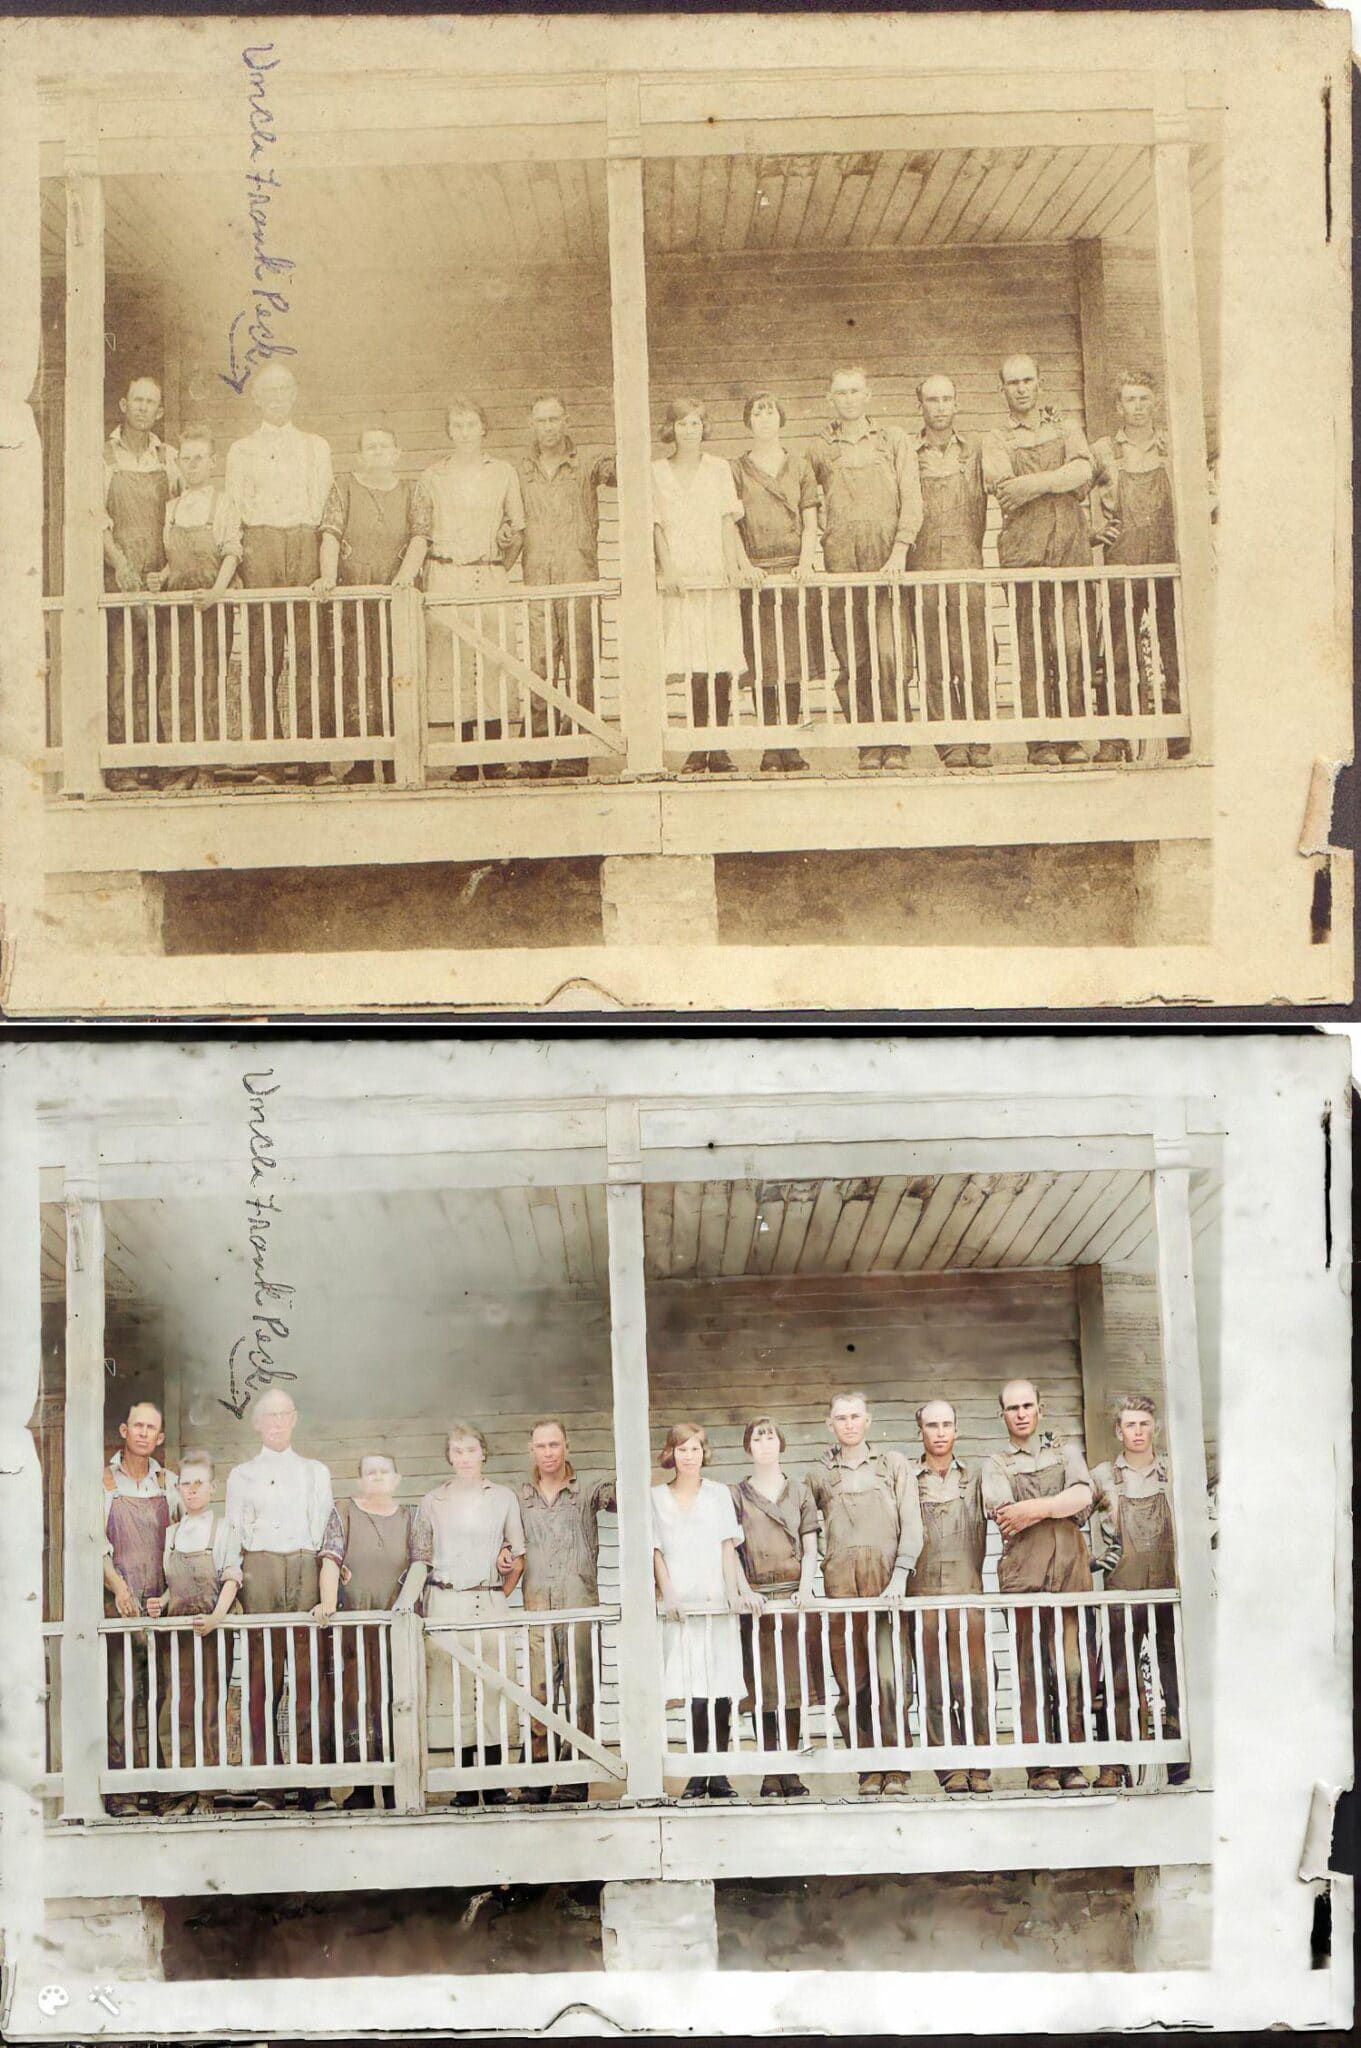 top and bottom comparison of colorized photos